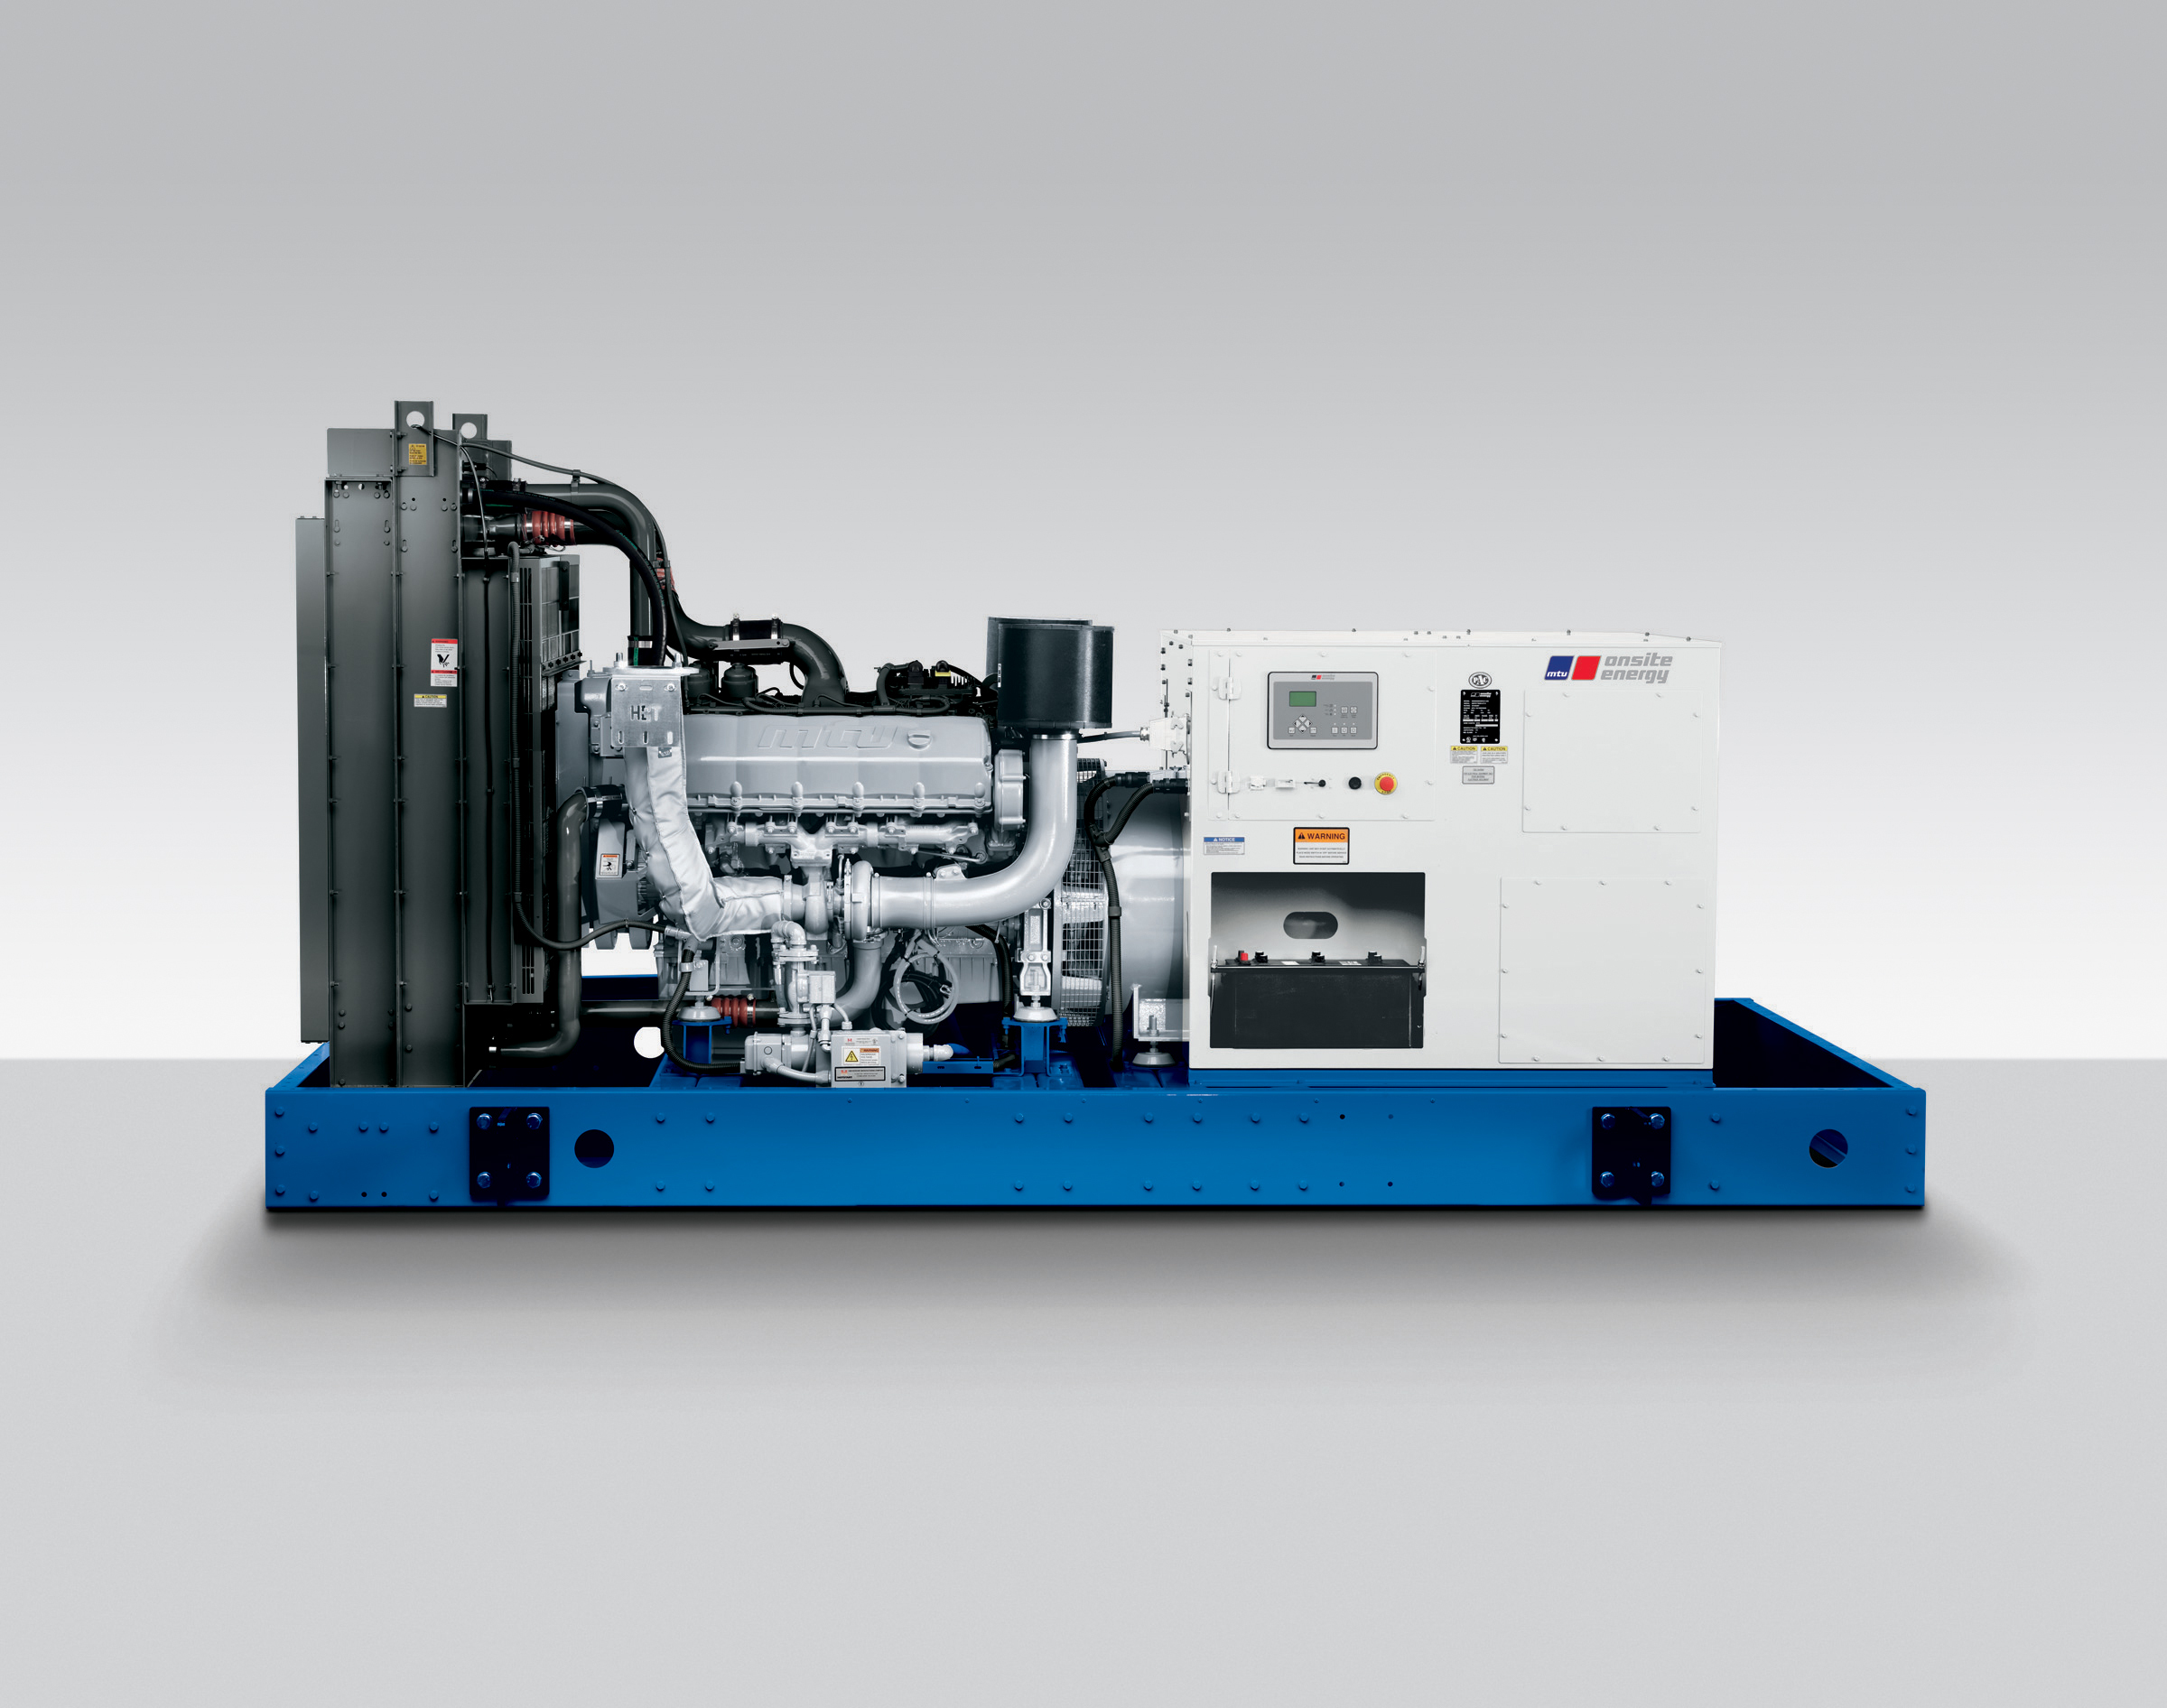 The MTU Onsite Energy 10V 1600 generator set is rated at 450 kWe for emergency backup power. (Photo: Business Wire)